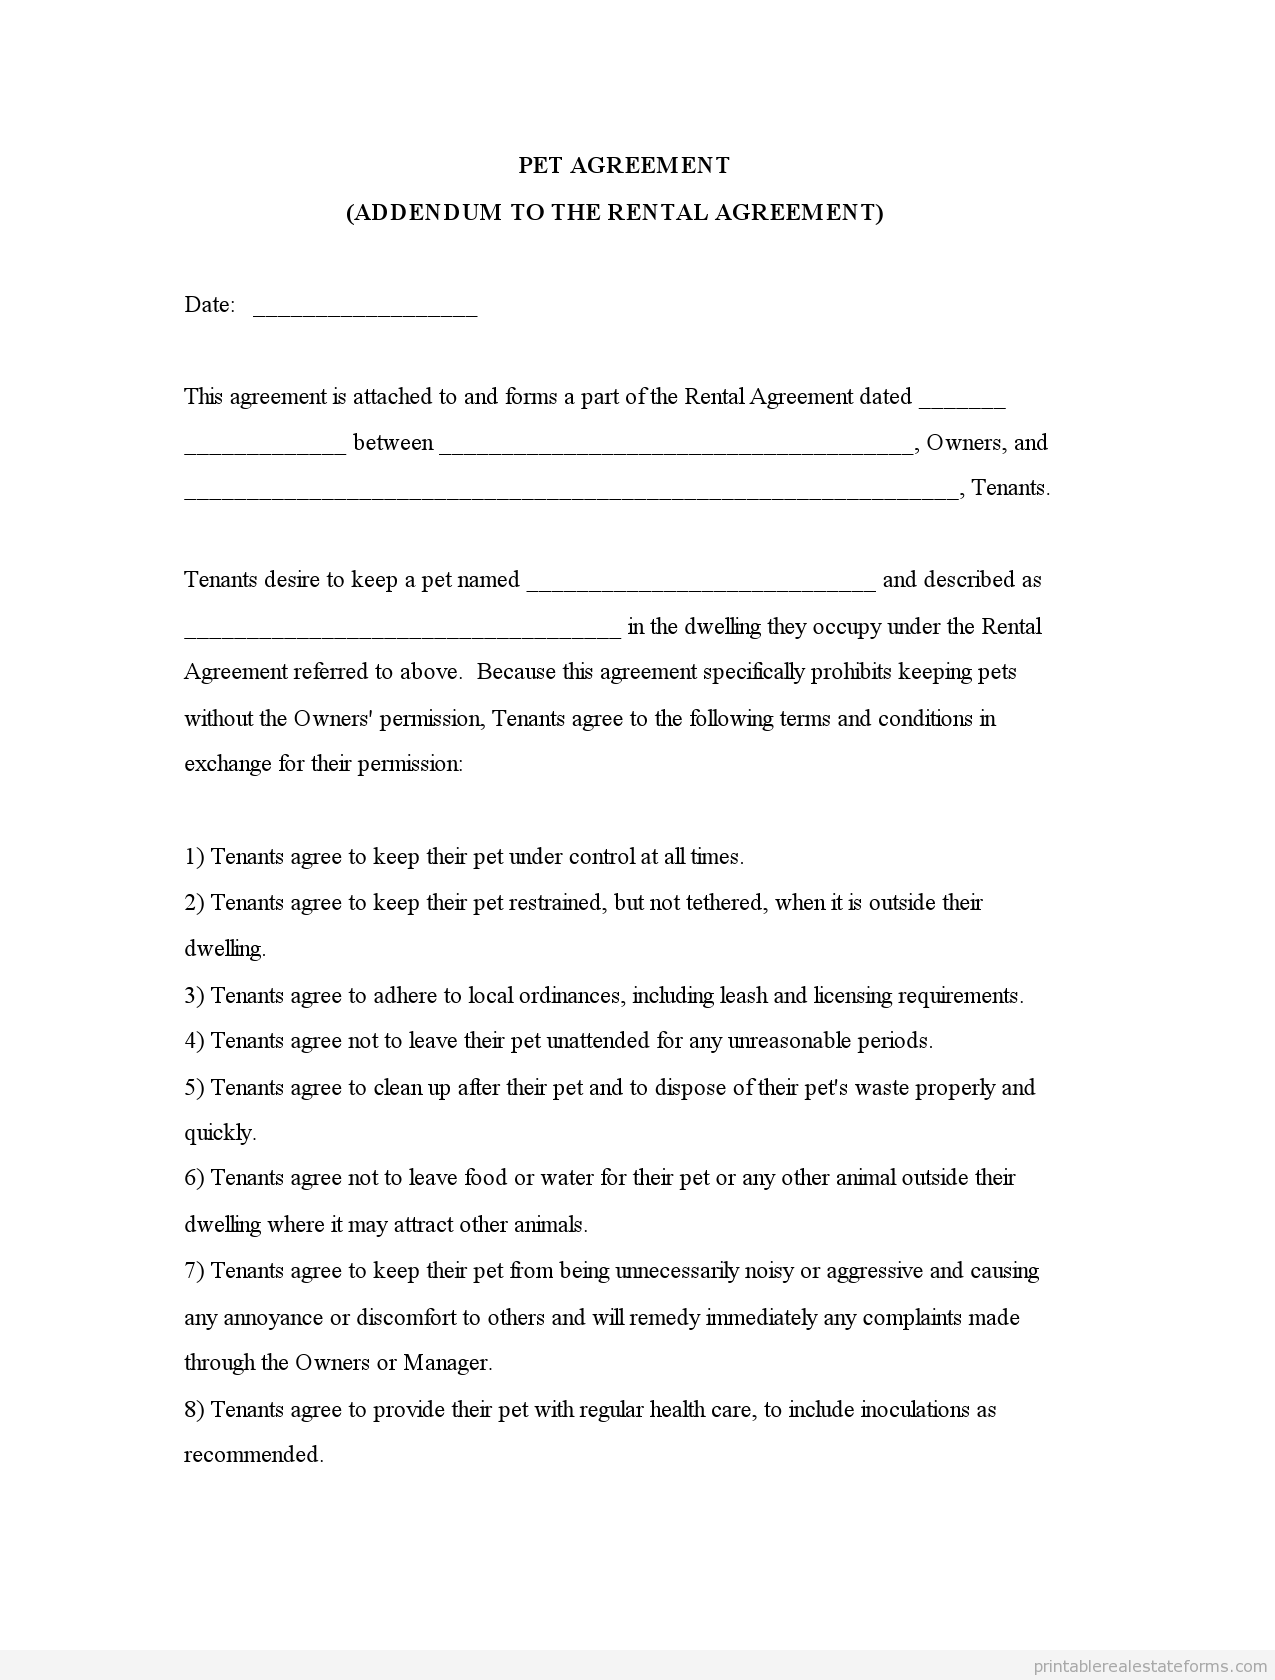 Sample Printable Pet Agreementm Addendum To The Rental